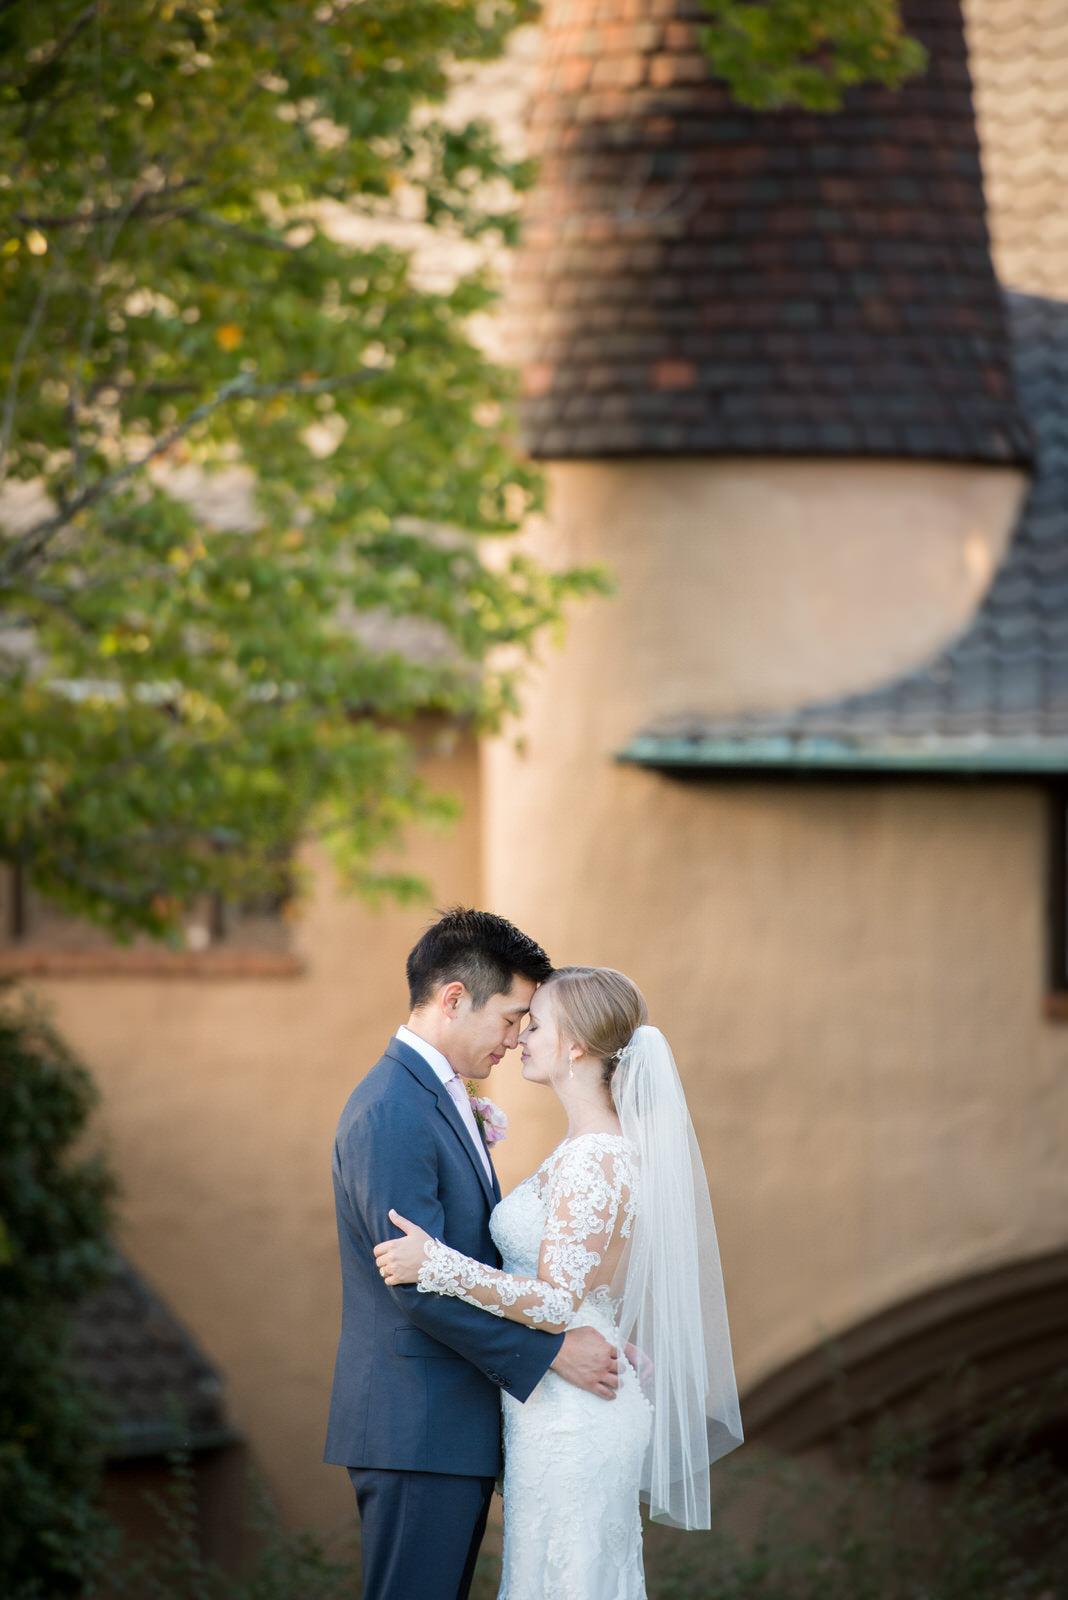 timeless wedding with bride in sheer fingertip length veil over bun